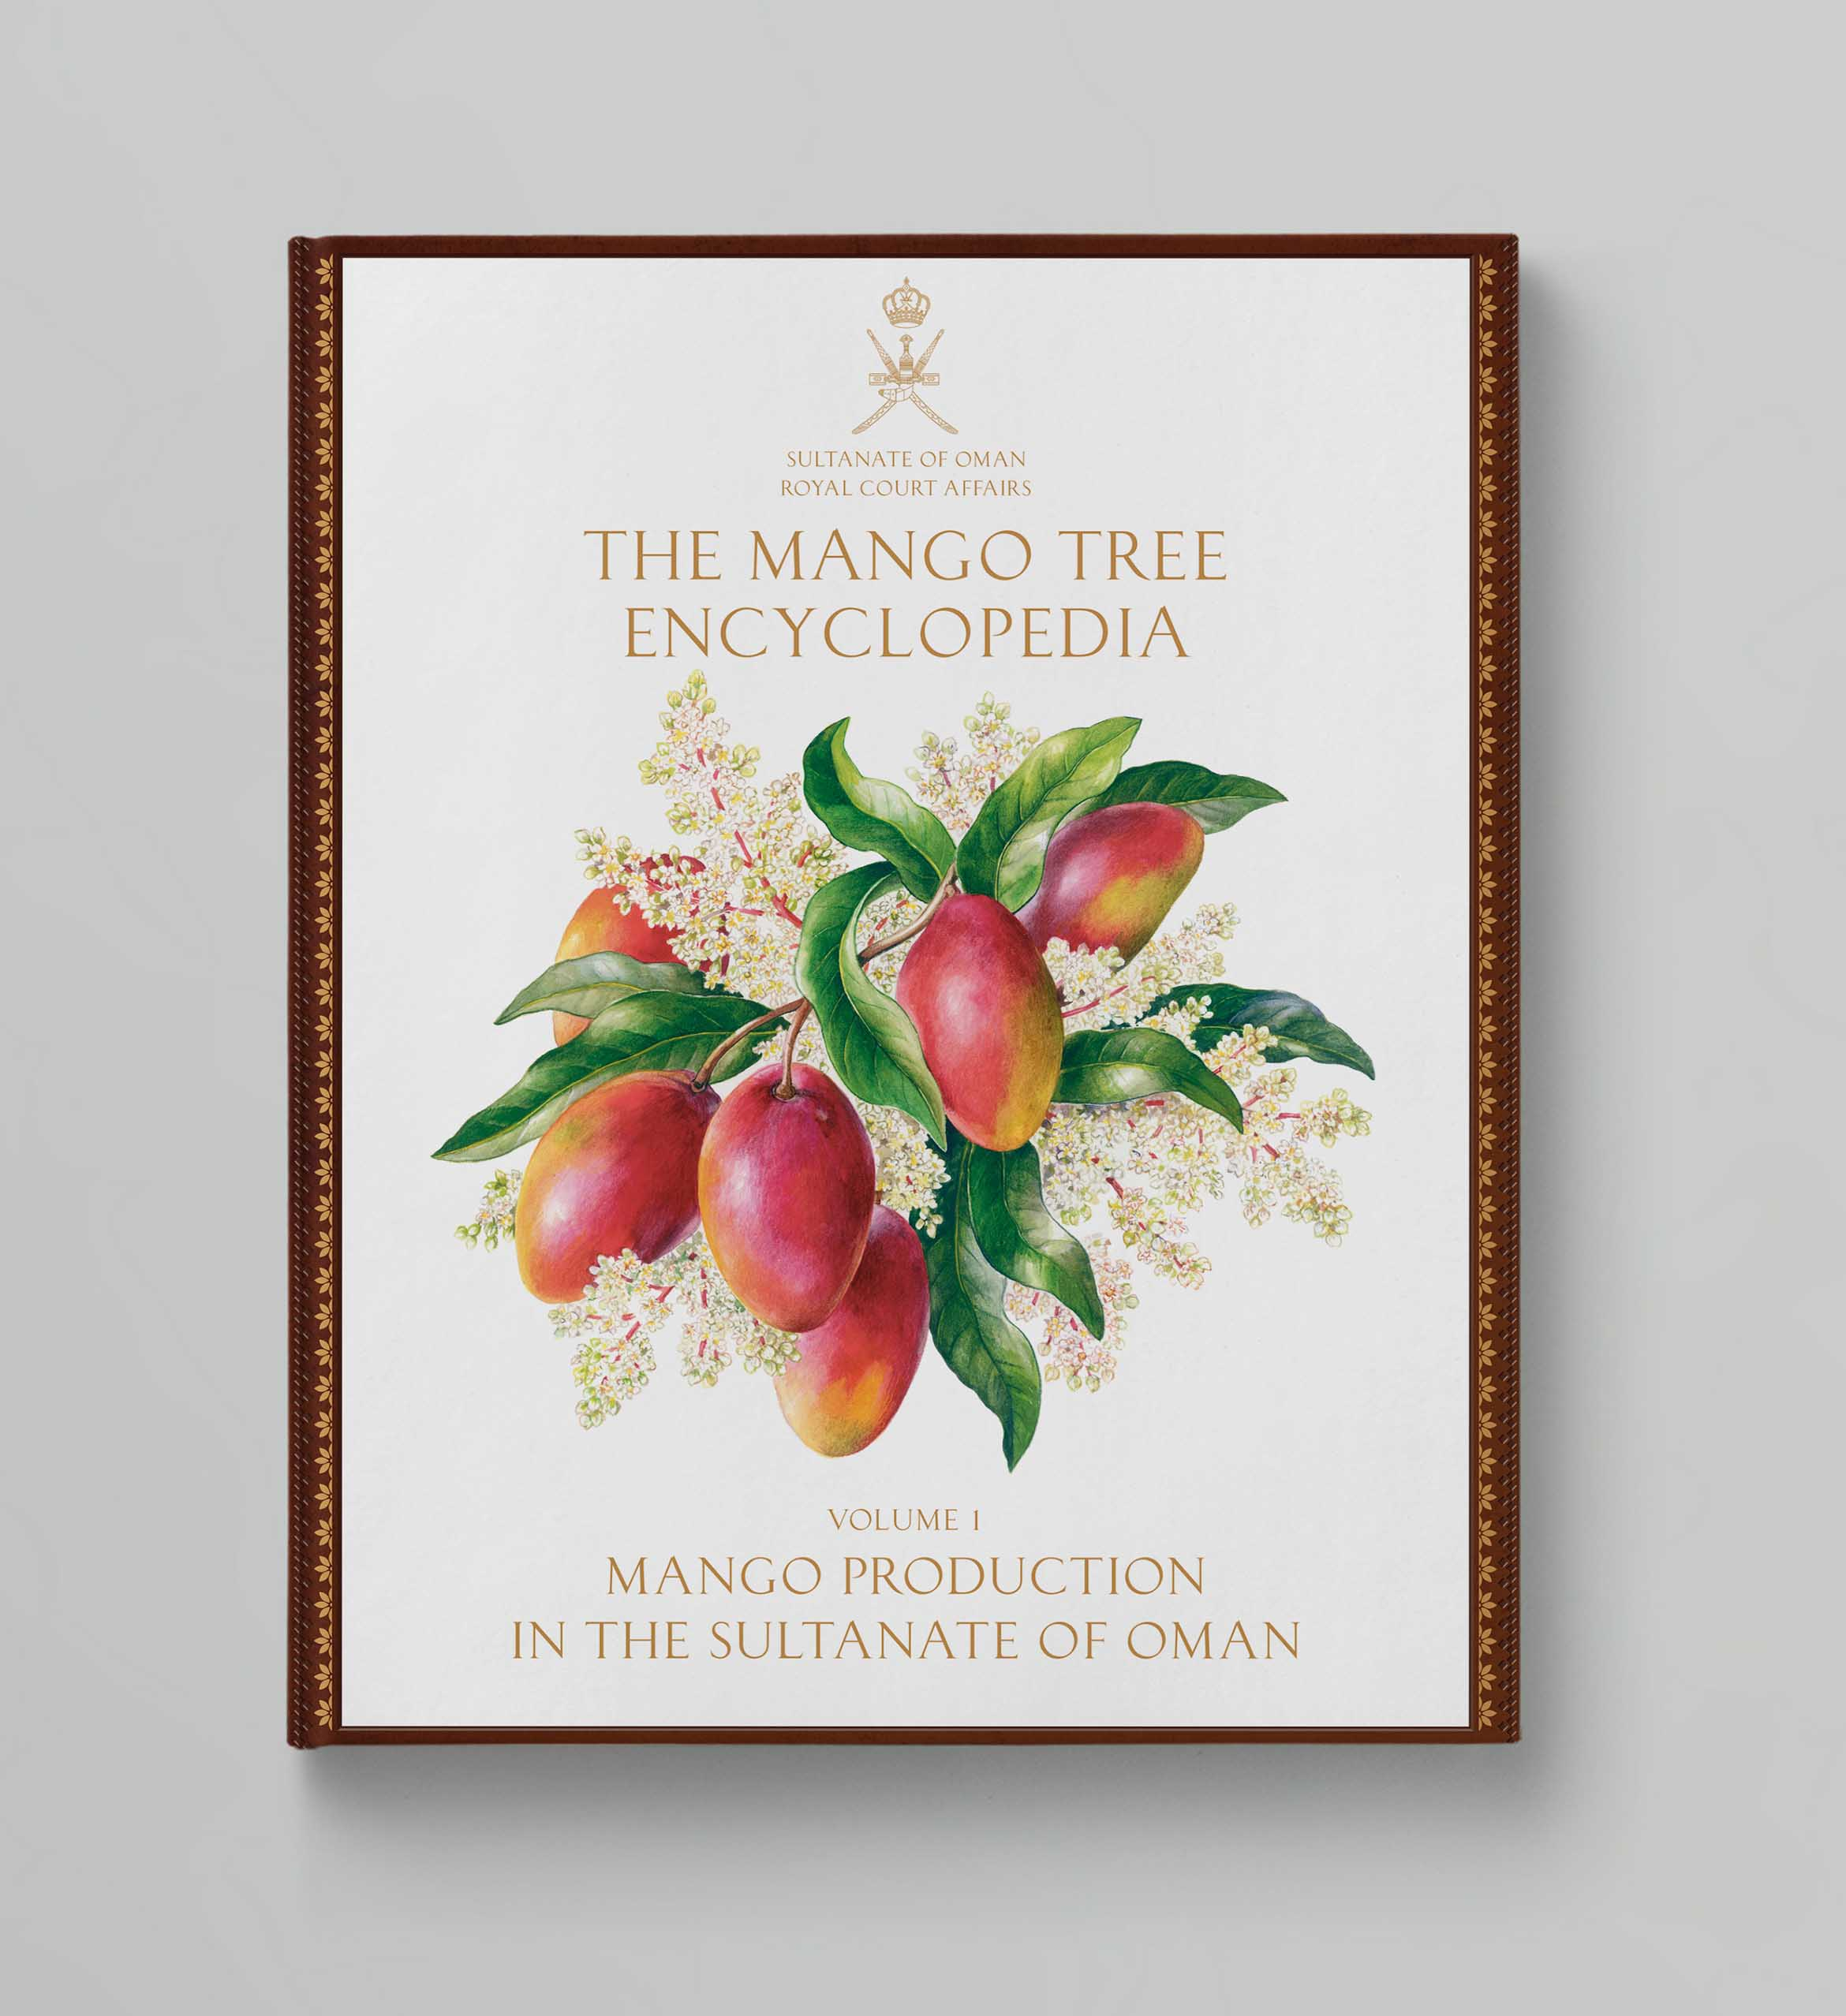 the_mango_tree_encyclo%c2%adpedia_engl_lux_cover_01